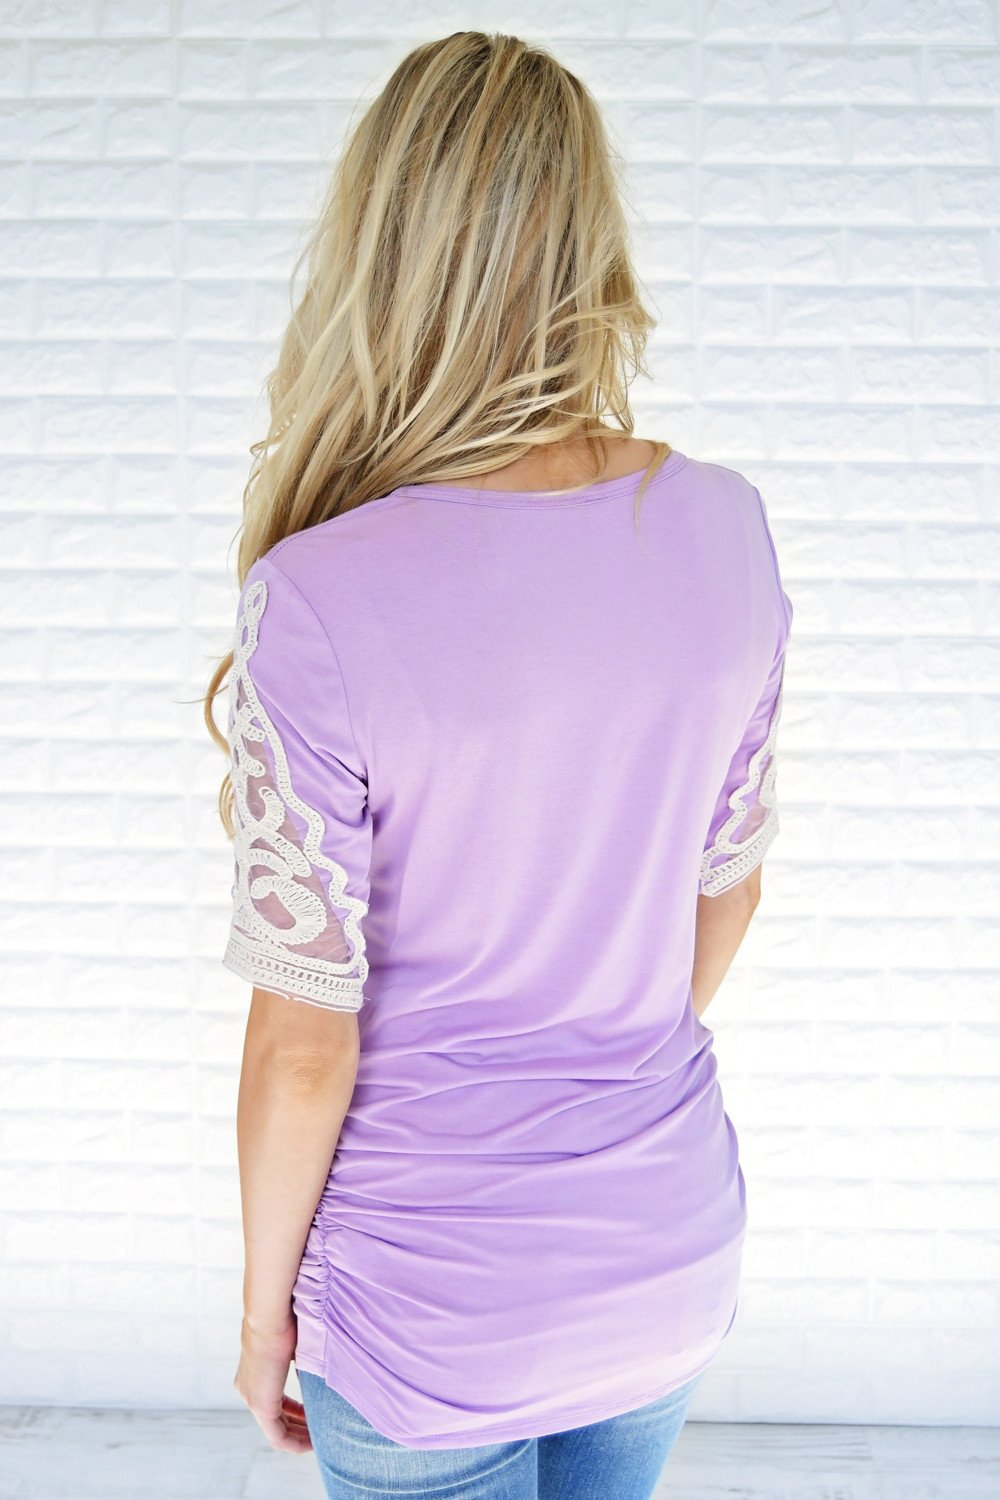 Shear Glamour Top ~ Light Purple